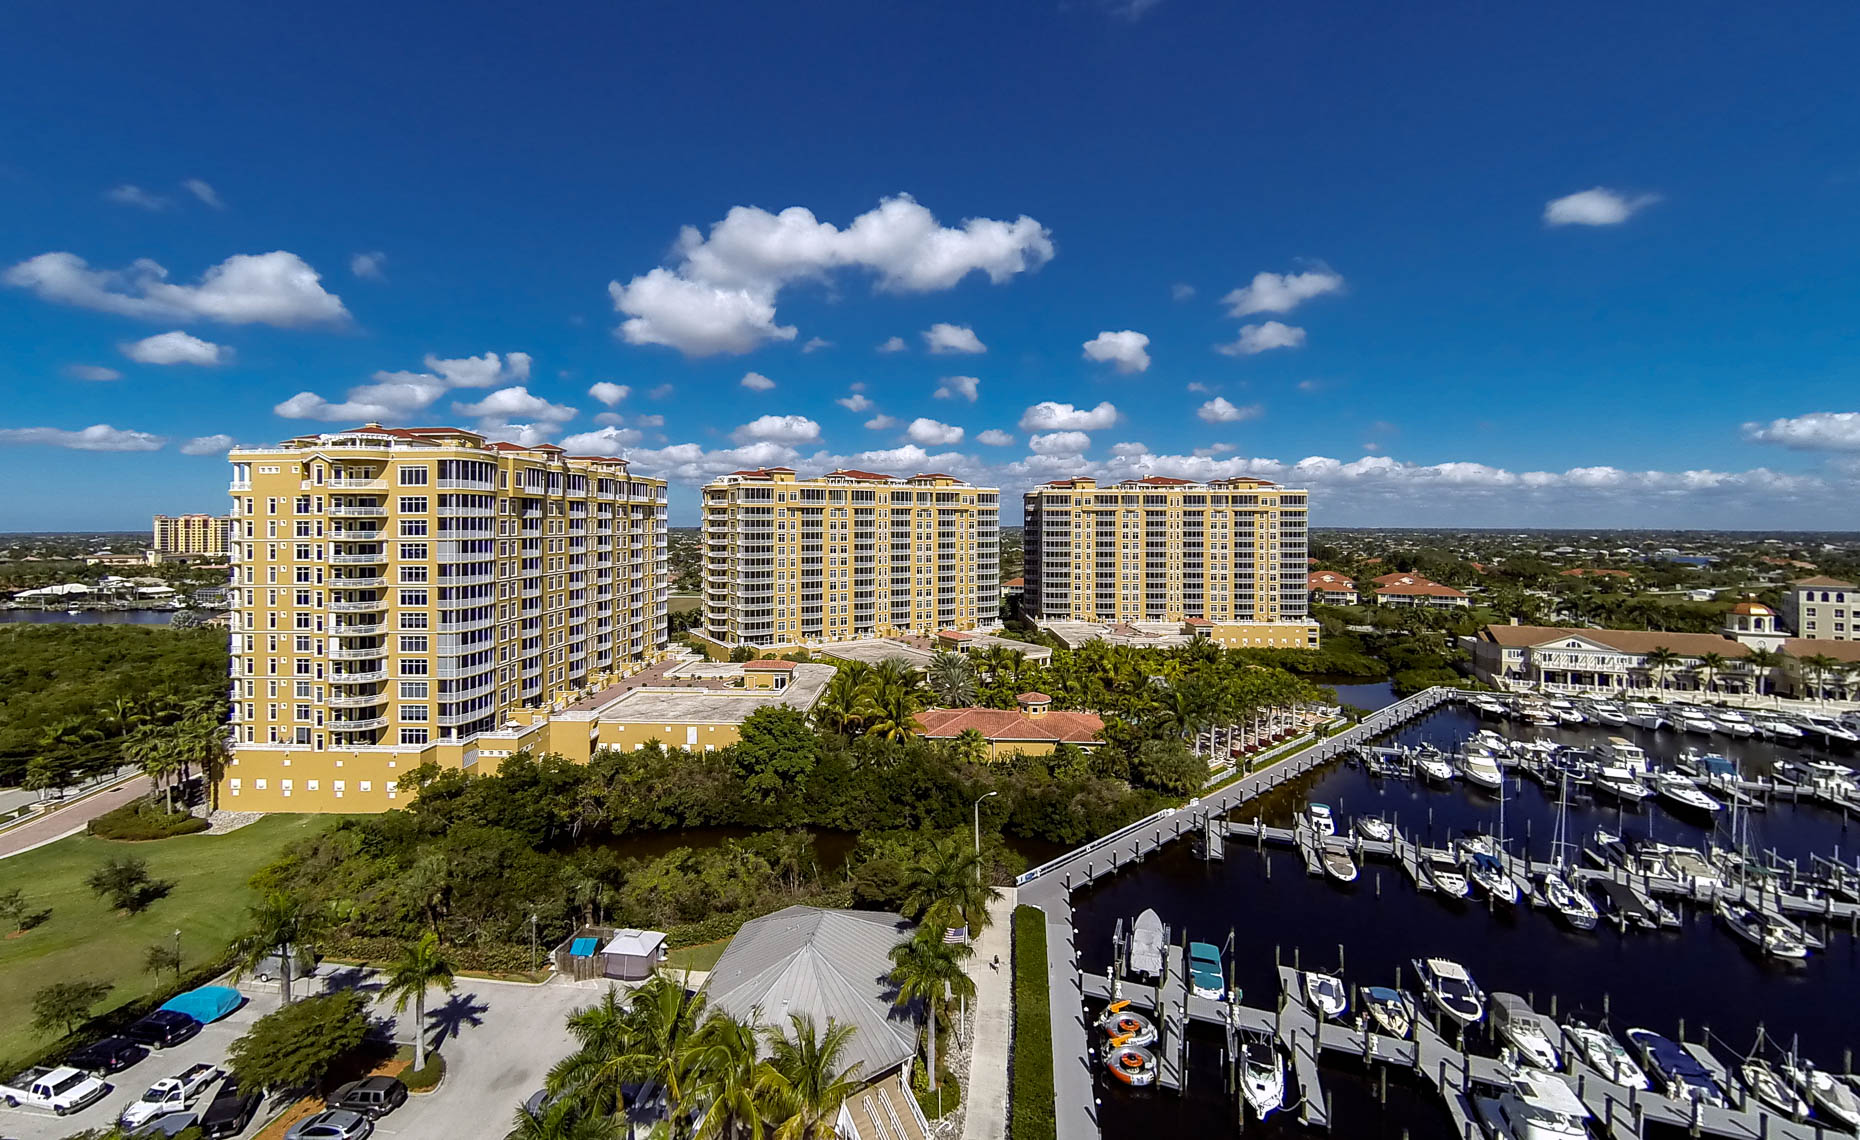 Aerial Highrise Condos  - Mark Borosch Photography - Cape Coral, FL